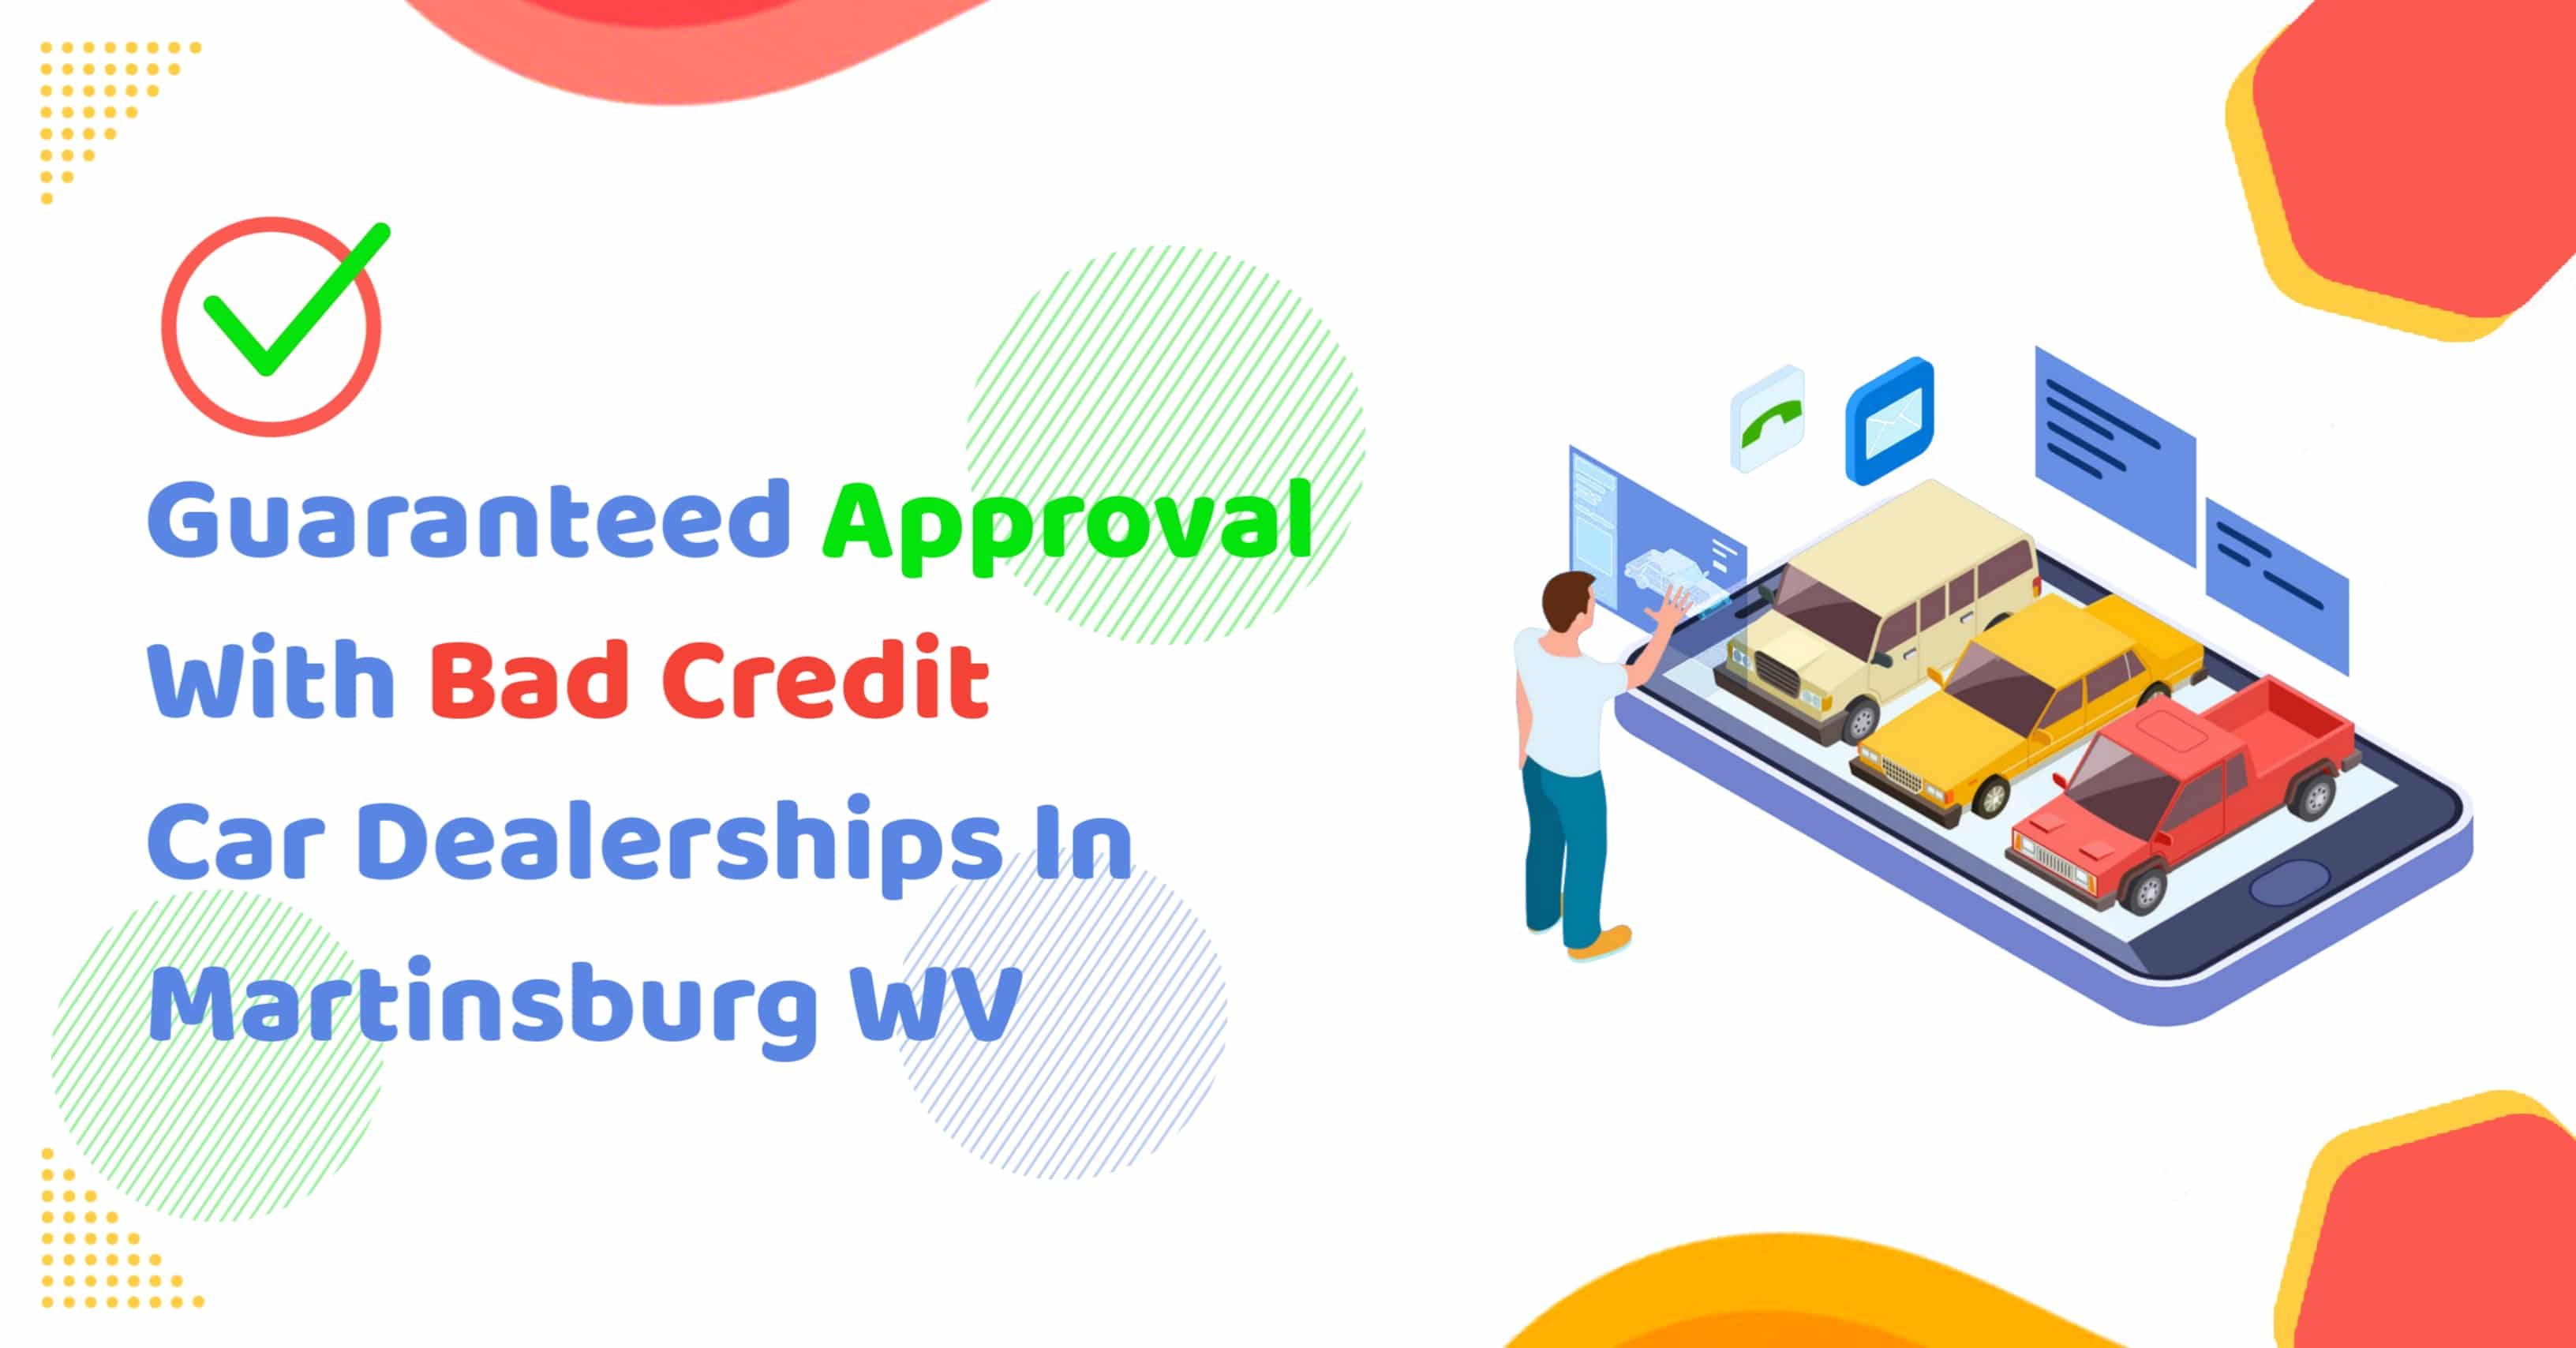 Guaranteed Approval With Bad Credit Car Dealerships in Martinsburg WV